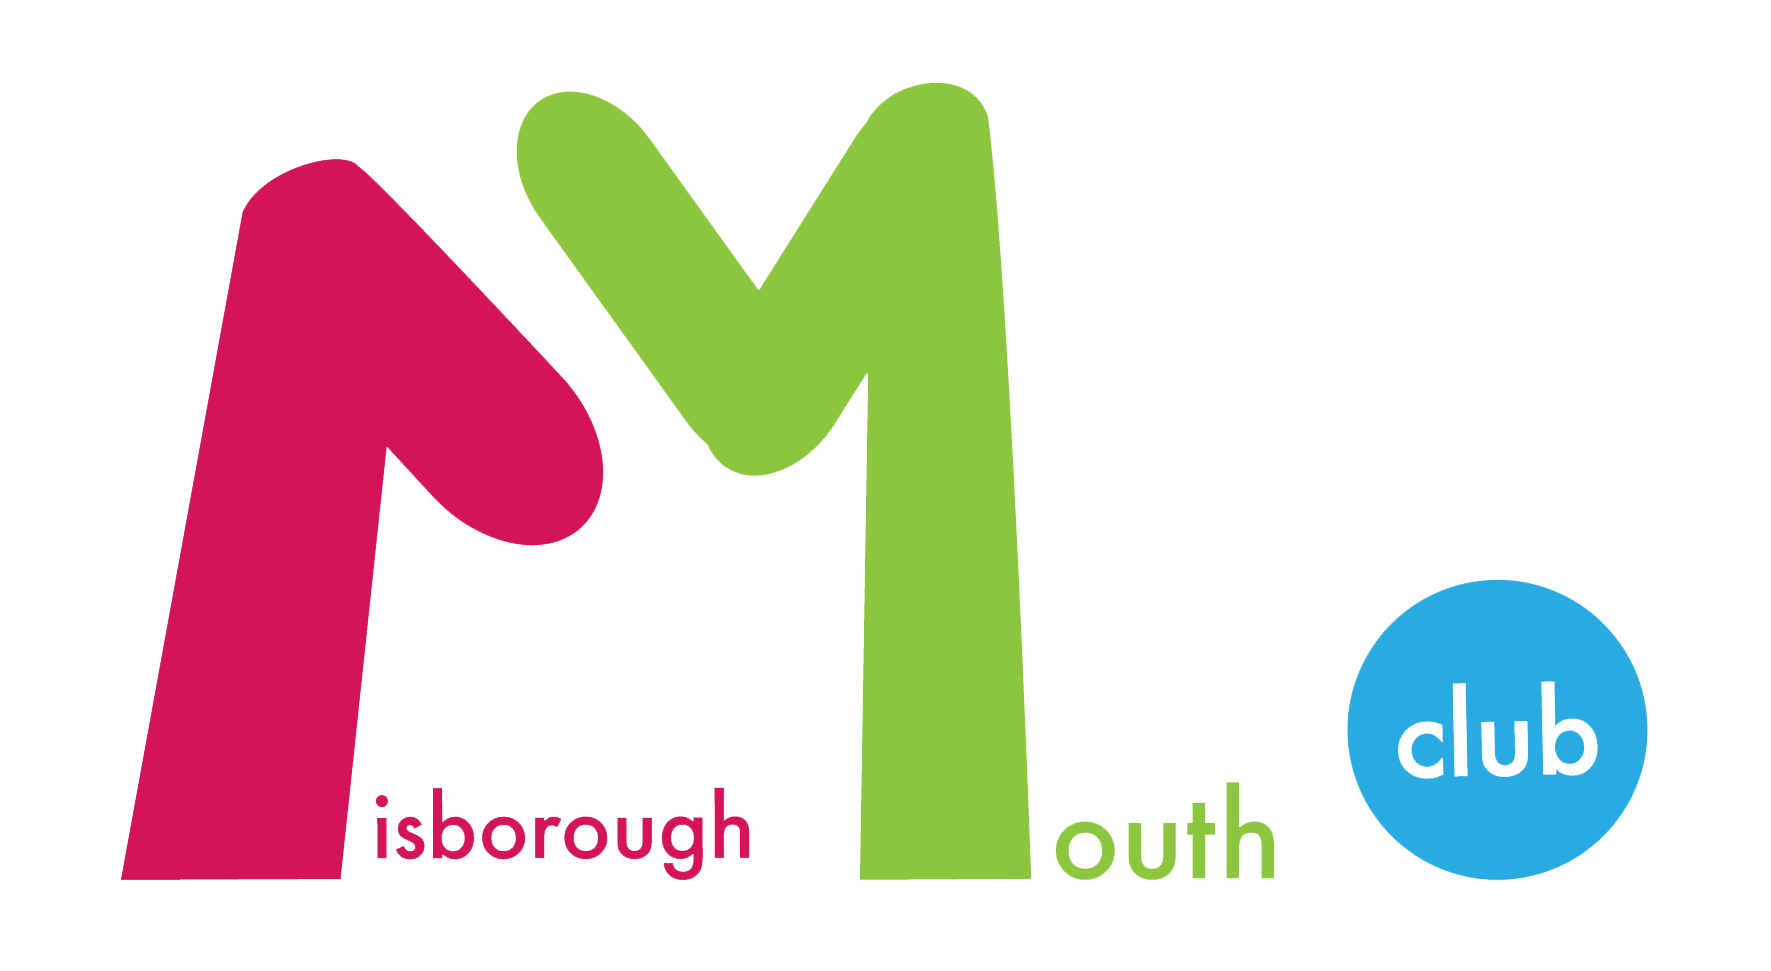 Risborough Youth Club